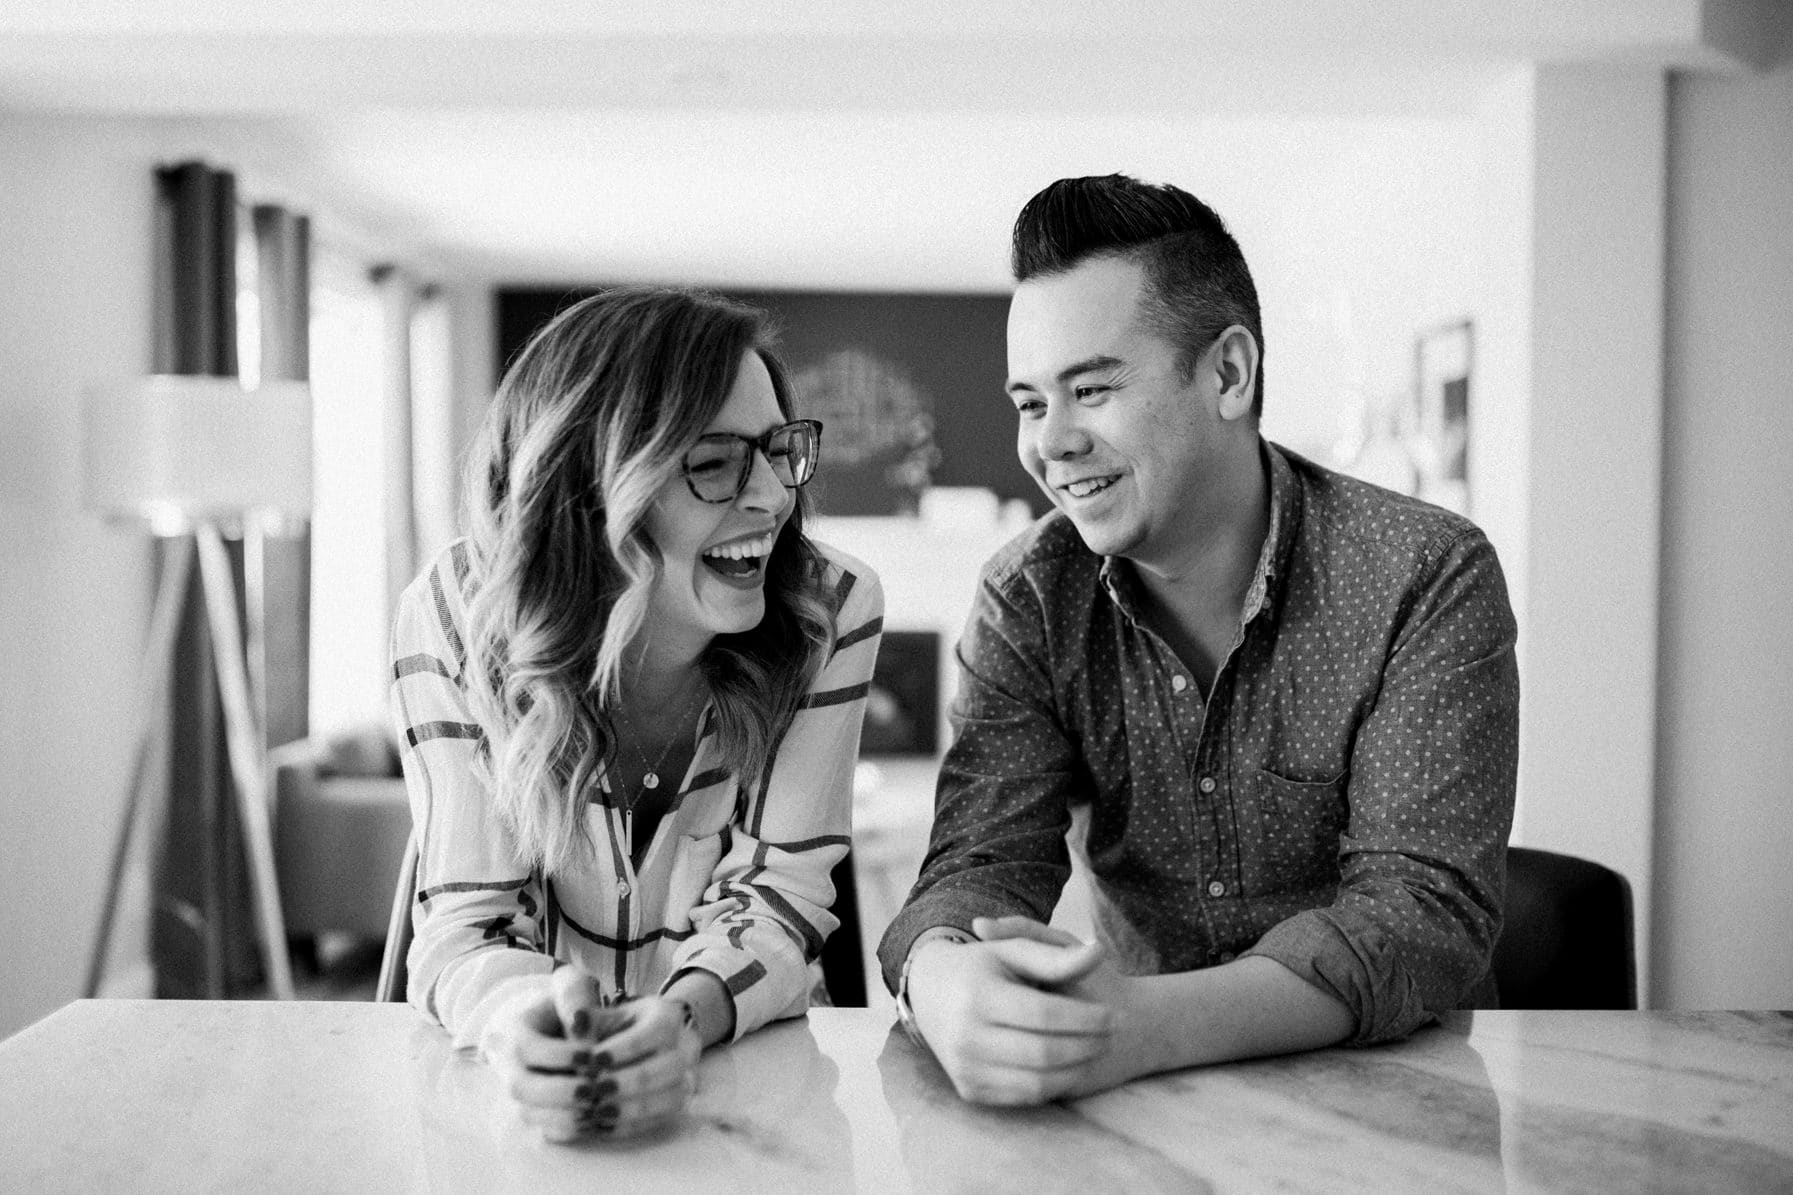 Couple laugh in home - Cozy At-Home Photos Lifestyle